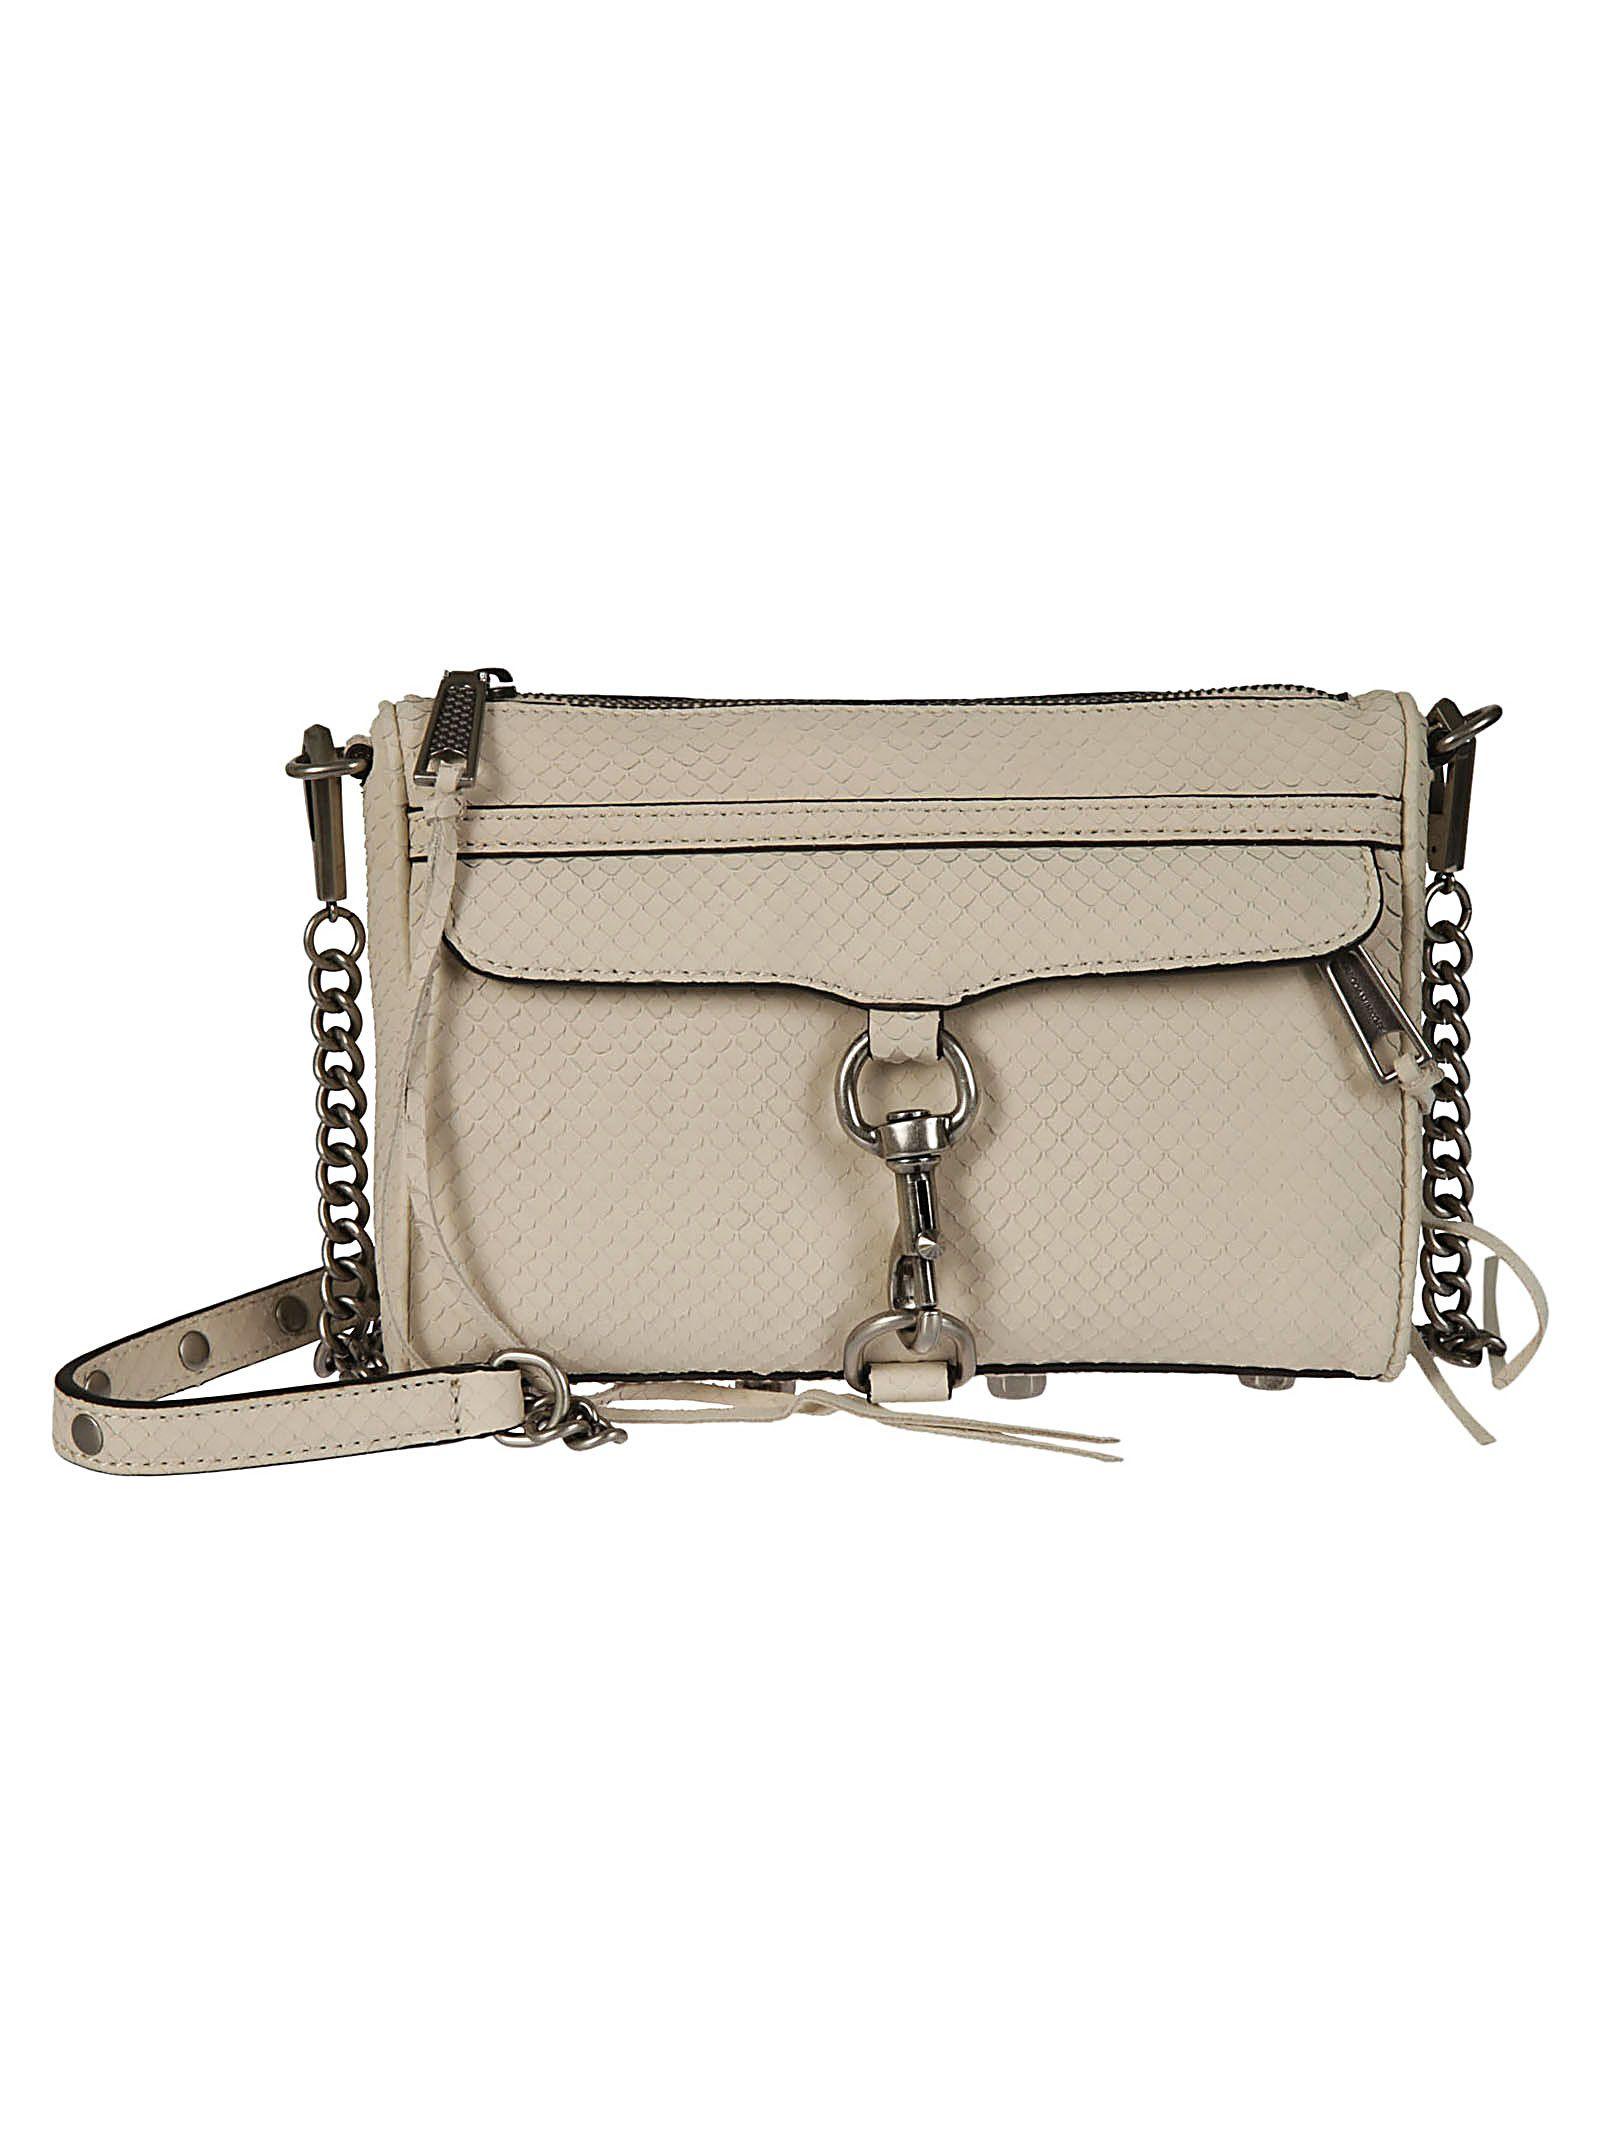 Rebecca Minkoff Fringe Shoulder Bag